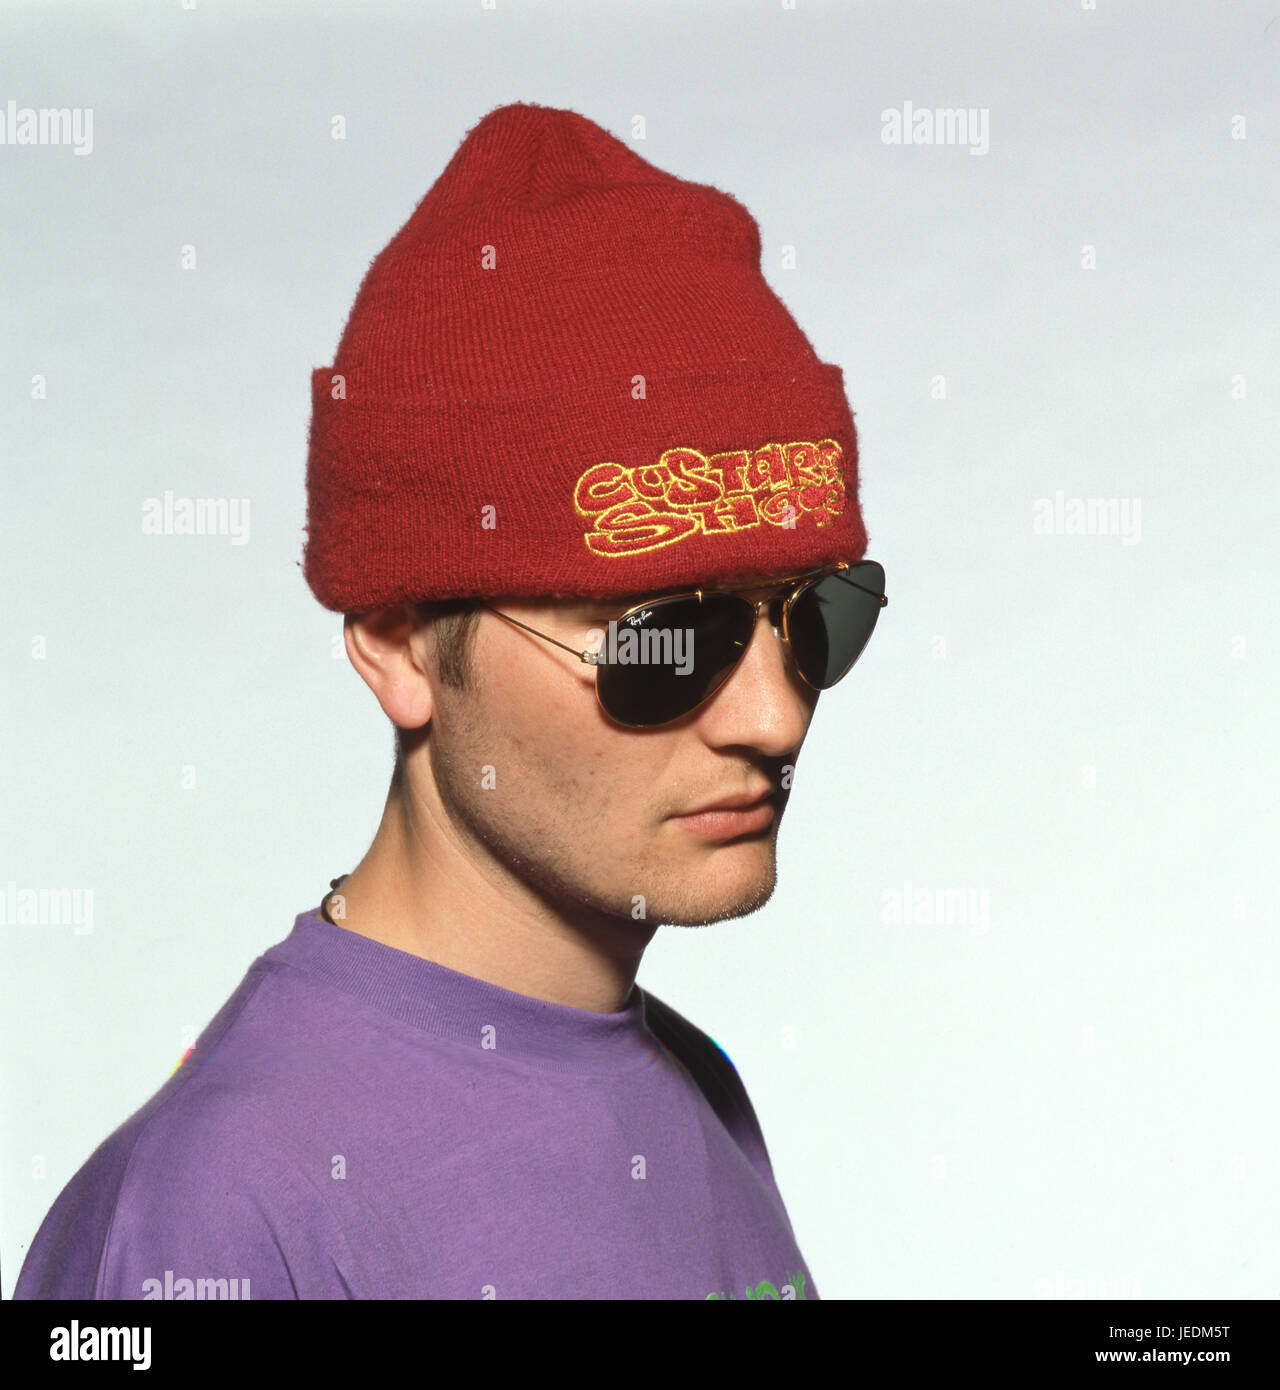 Portrait of a young man in a purple t shirt, wearing a red hat and sunglasses - Stock Image